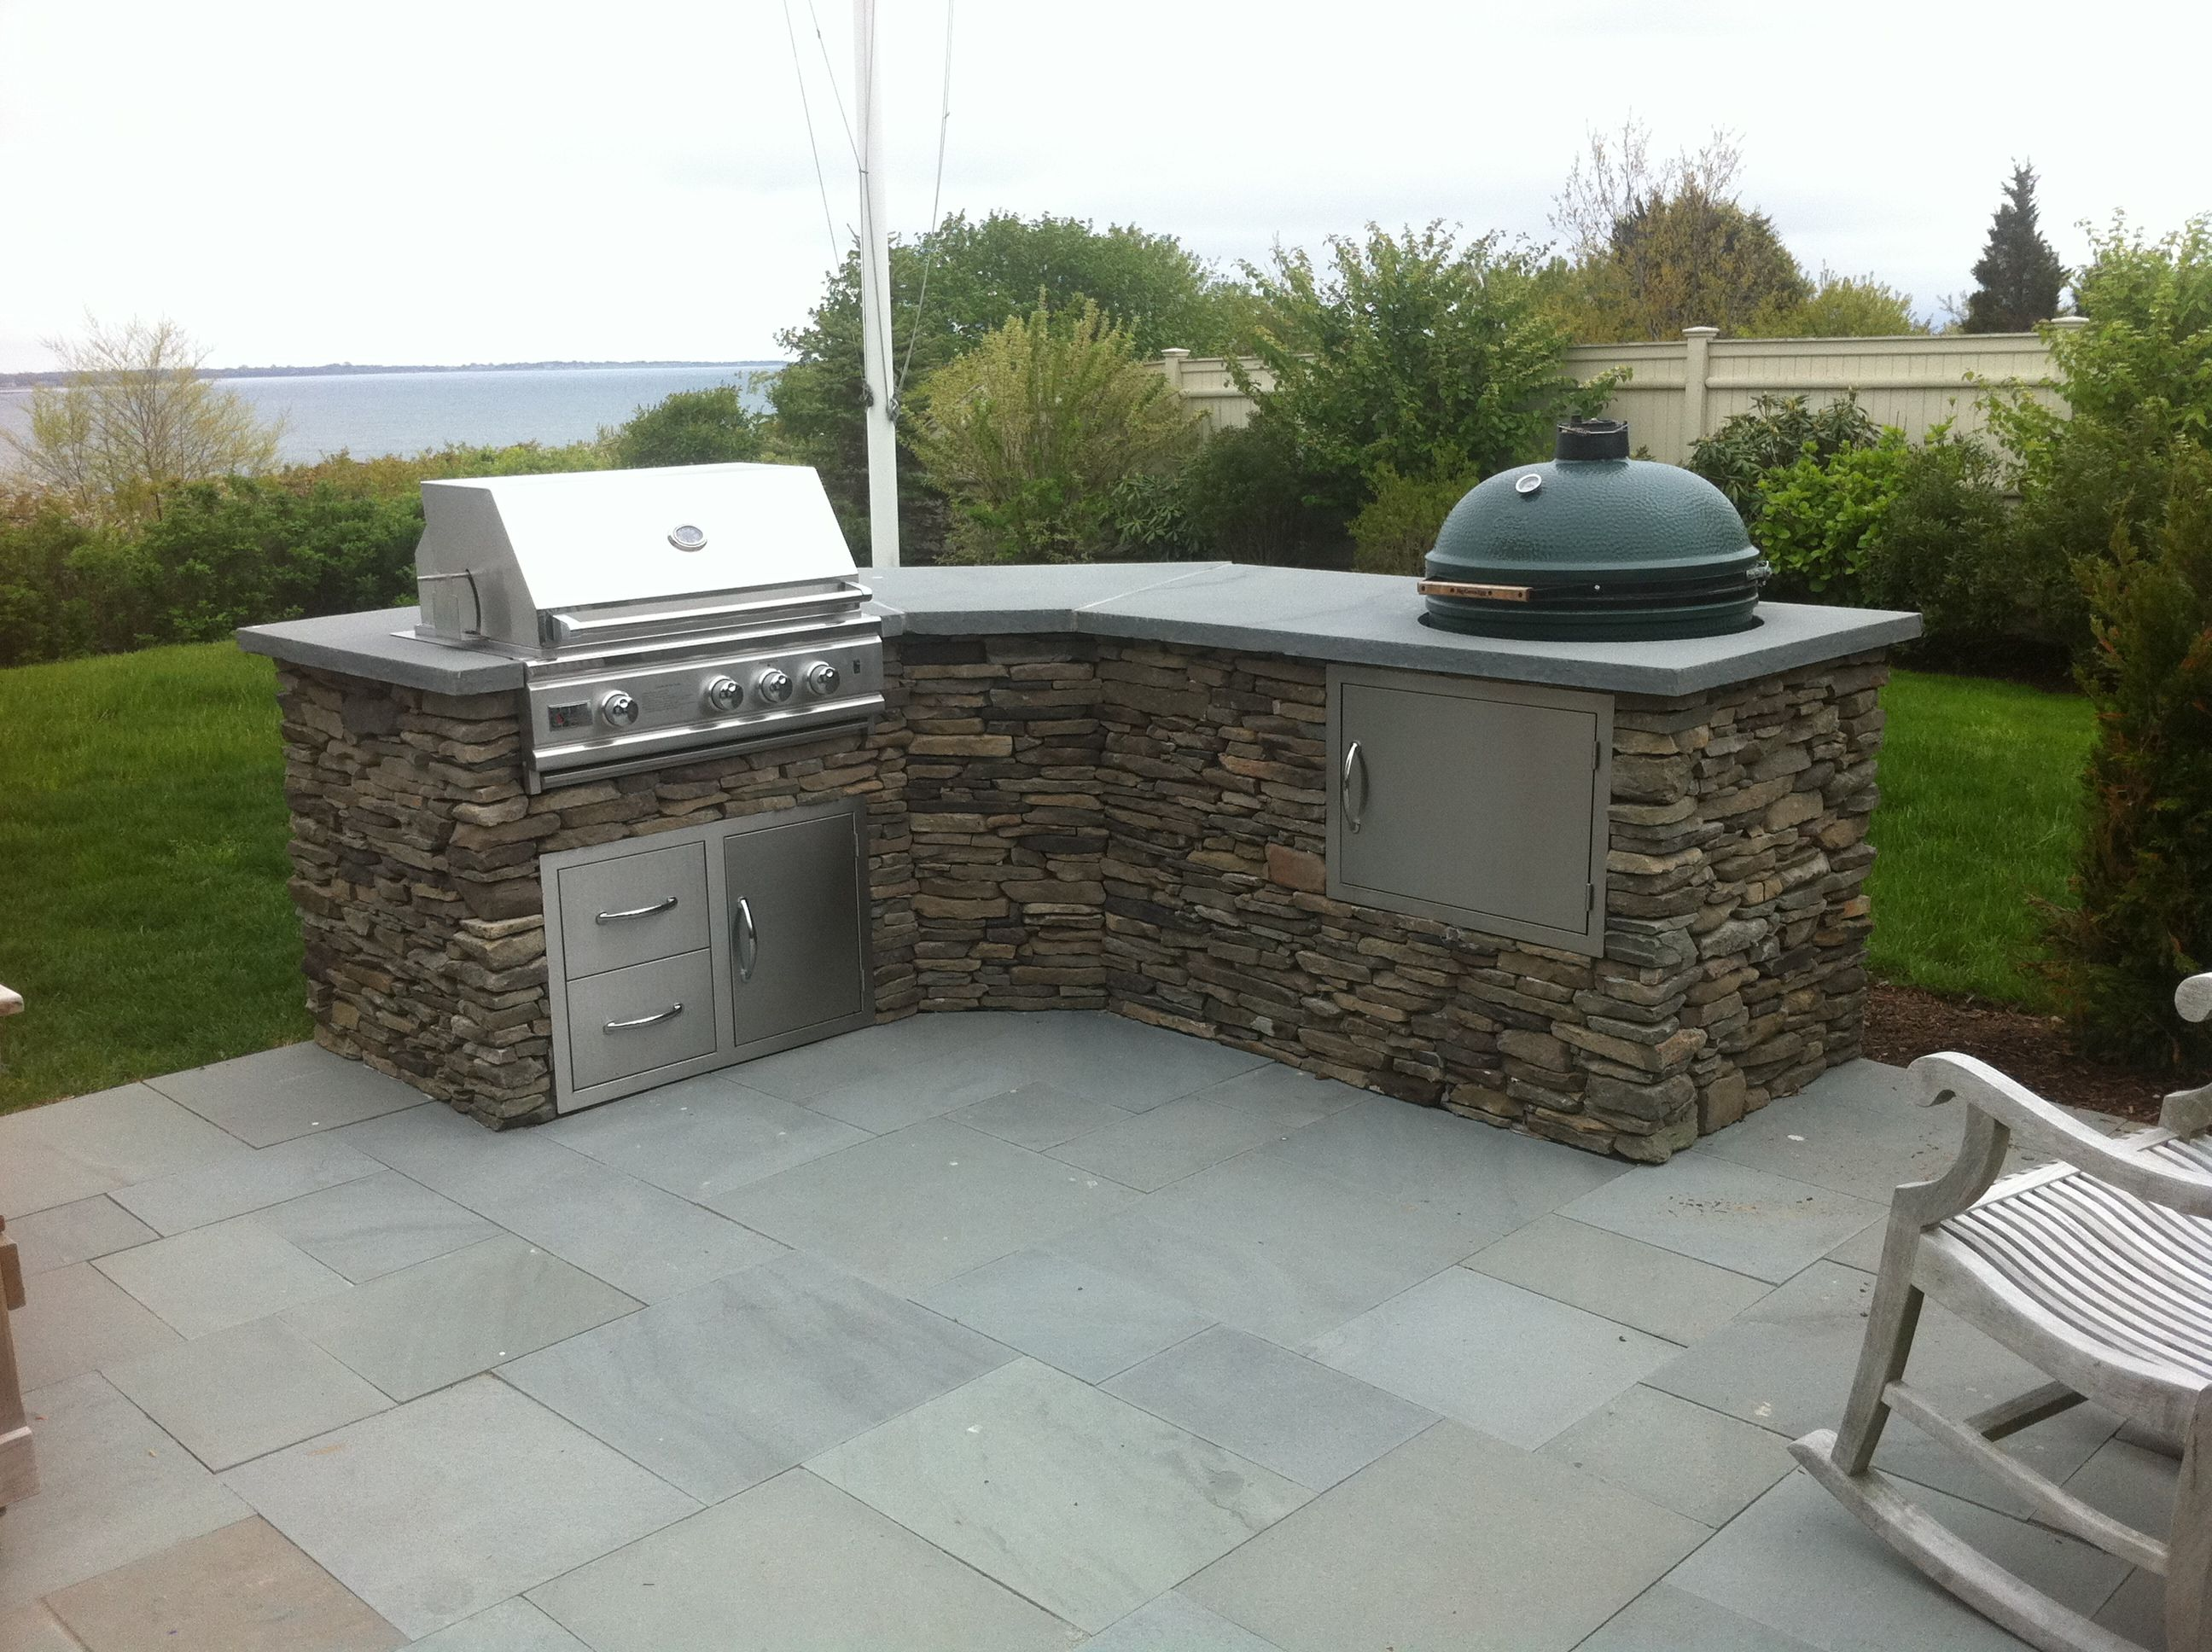 Outdoor Modular Kitchen Cabinet Systems For an Outdoor Living